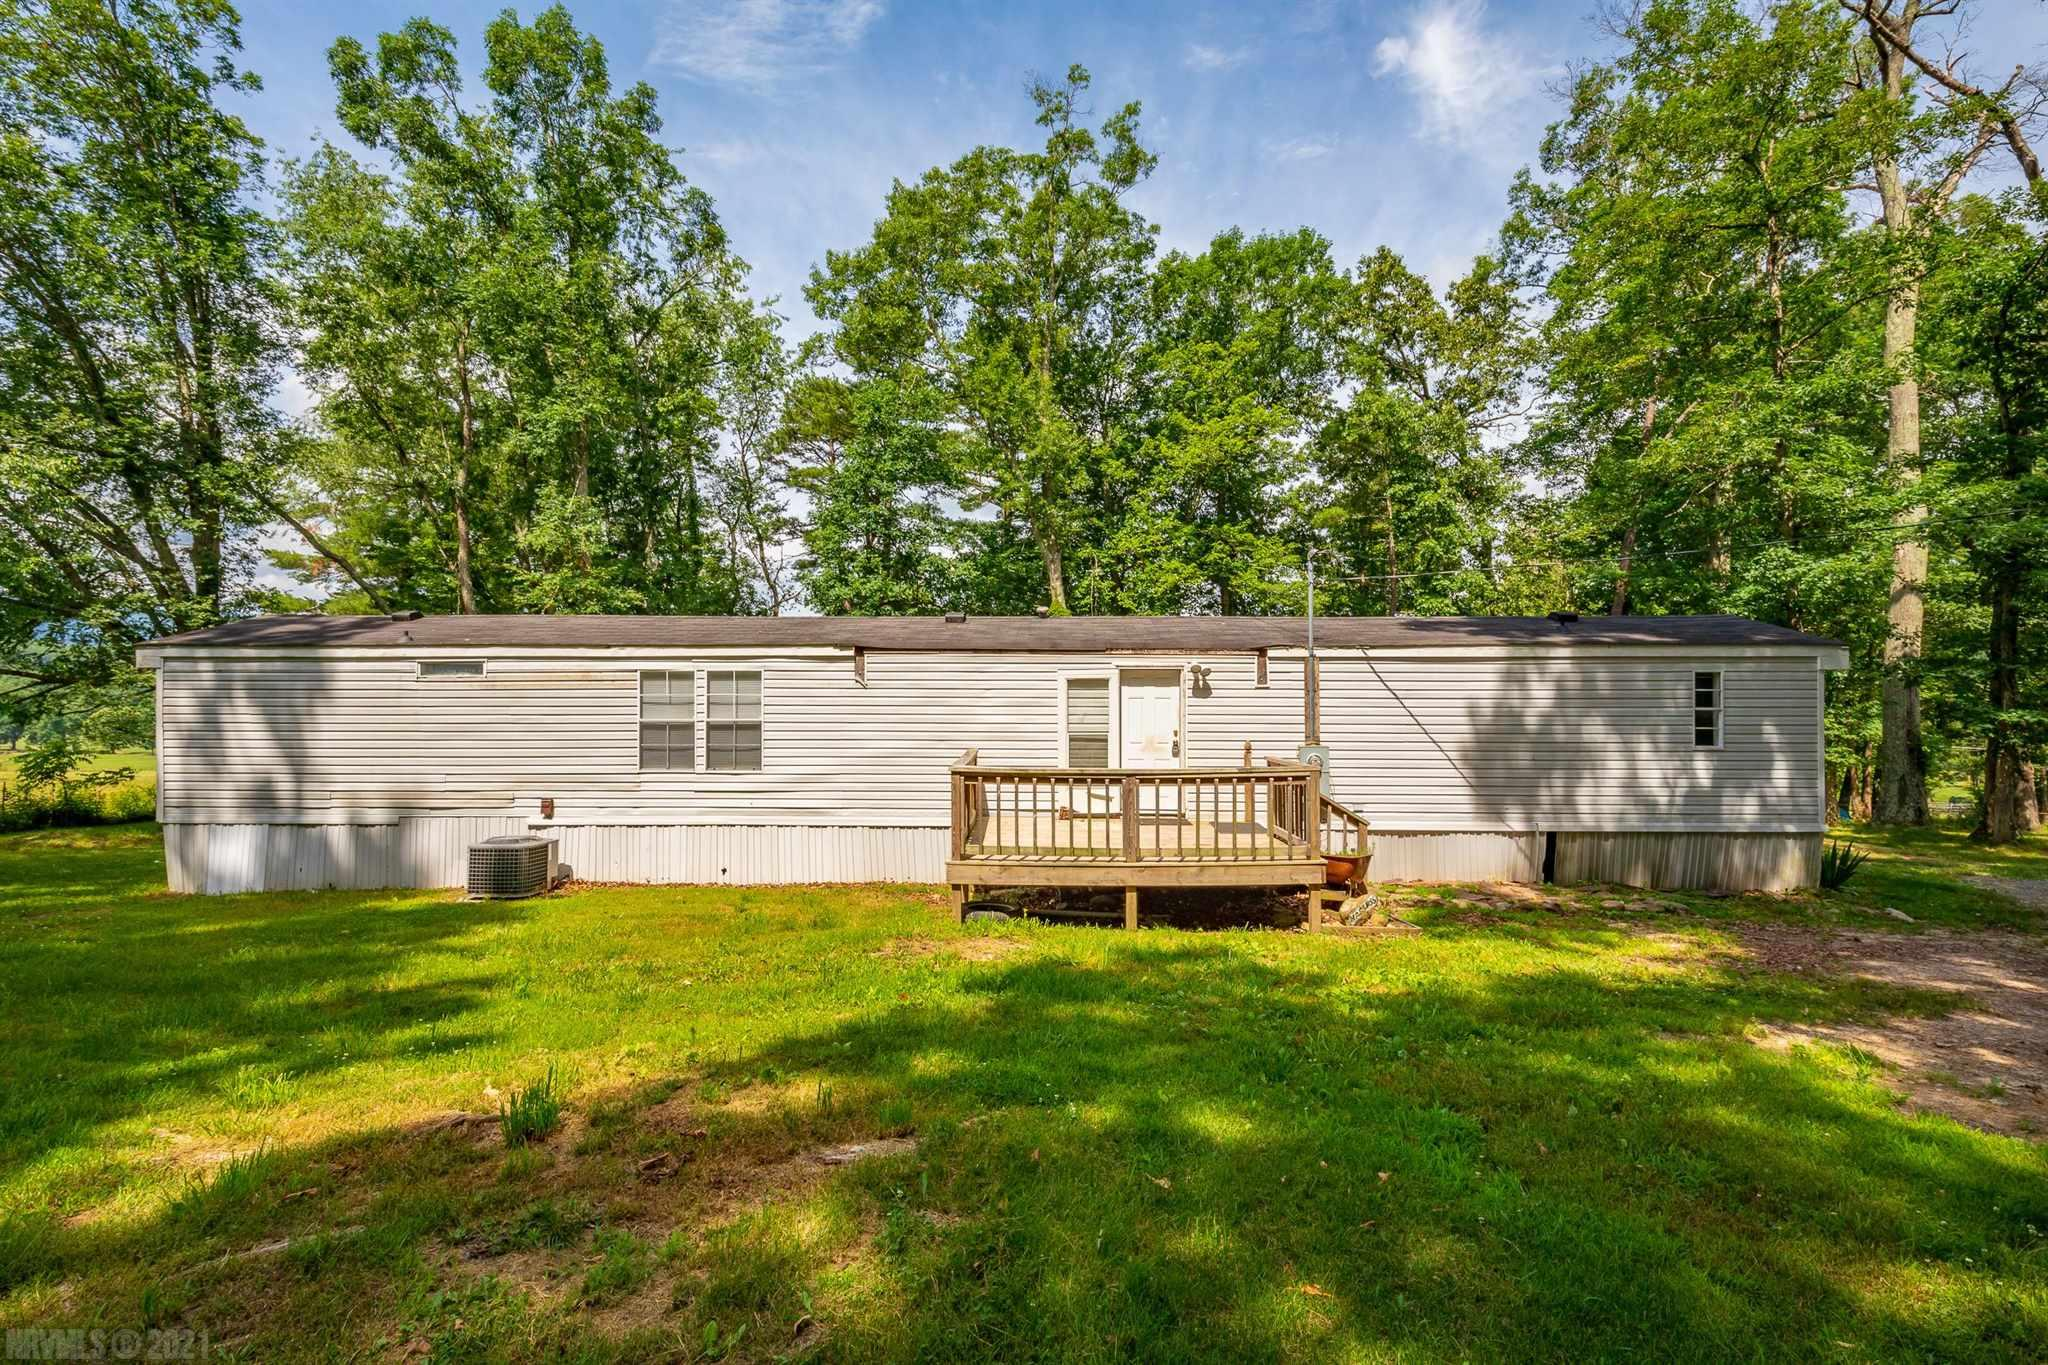 Great opportunity for a starter home, investment property, or recreational property! Jefferson National Forest lies less than a half mile in your back yard. Enjoy the mountain views and great fishing opportunities at Rural Retreat fishing lake and Hale Lake on Comers rock. Iron Mountain Horse Camp is just down the road, as well as many other recreational activities. The property has its own well and septic and ample level land for whatever use you desire. Call today!